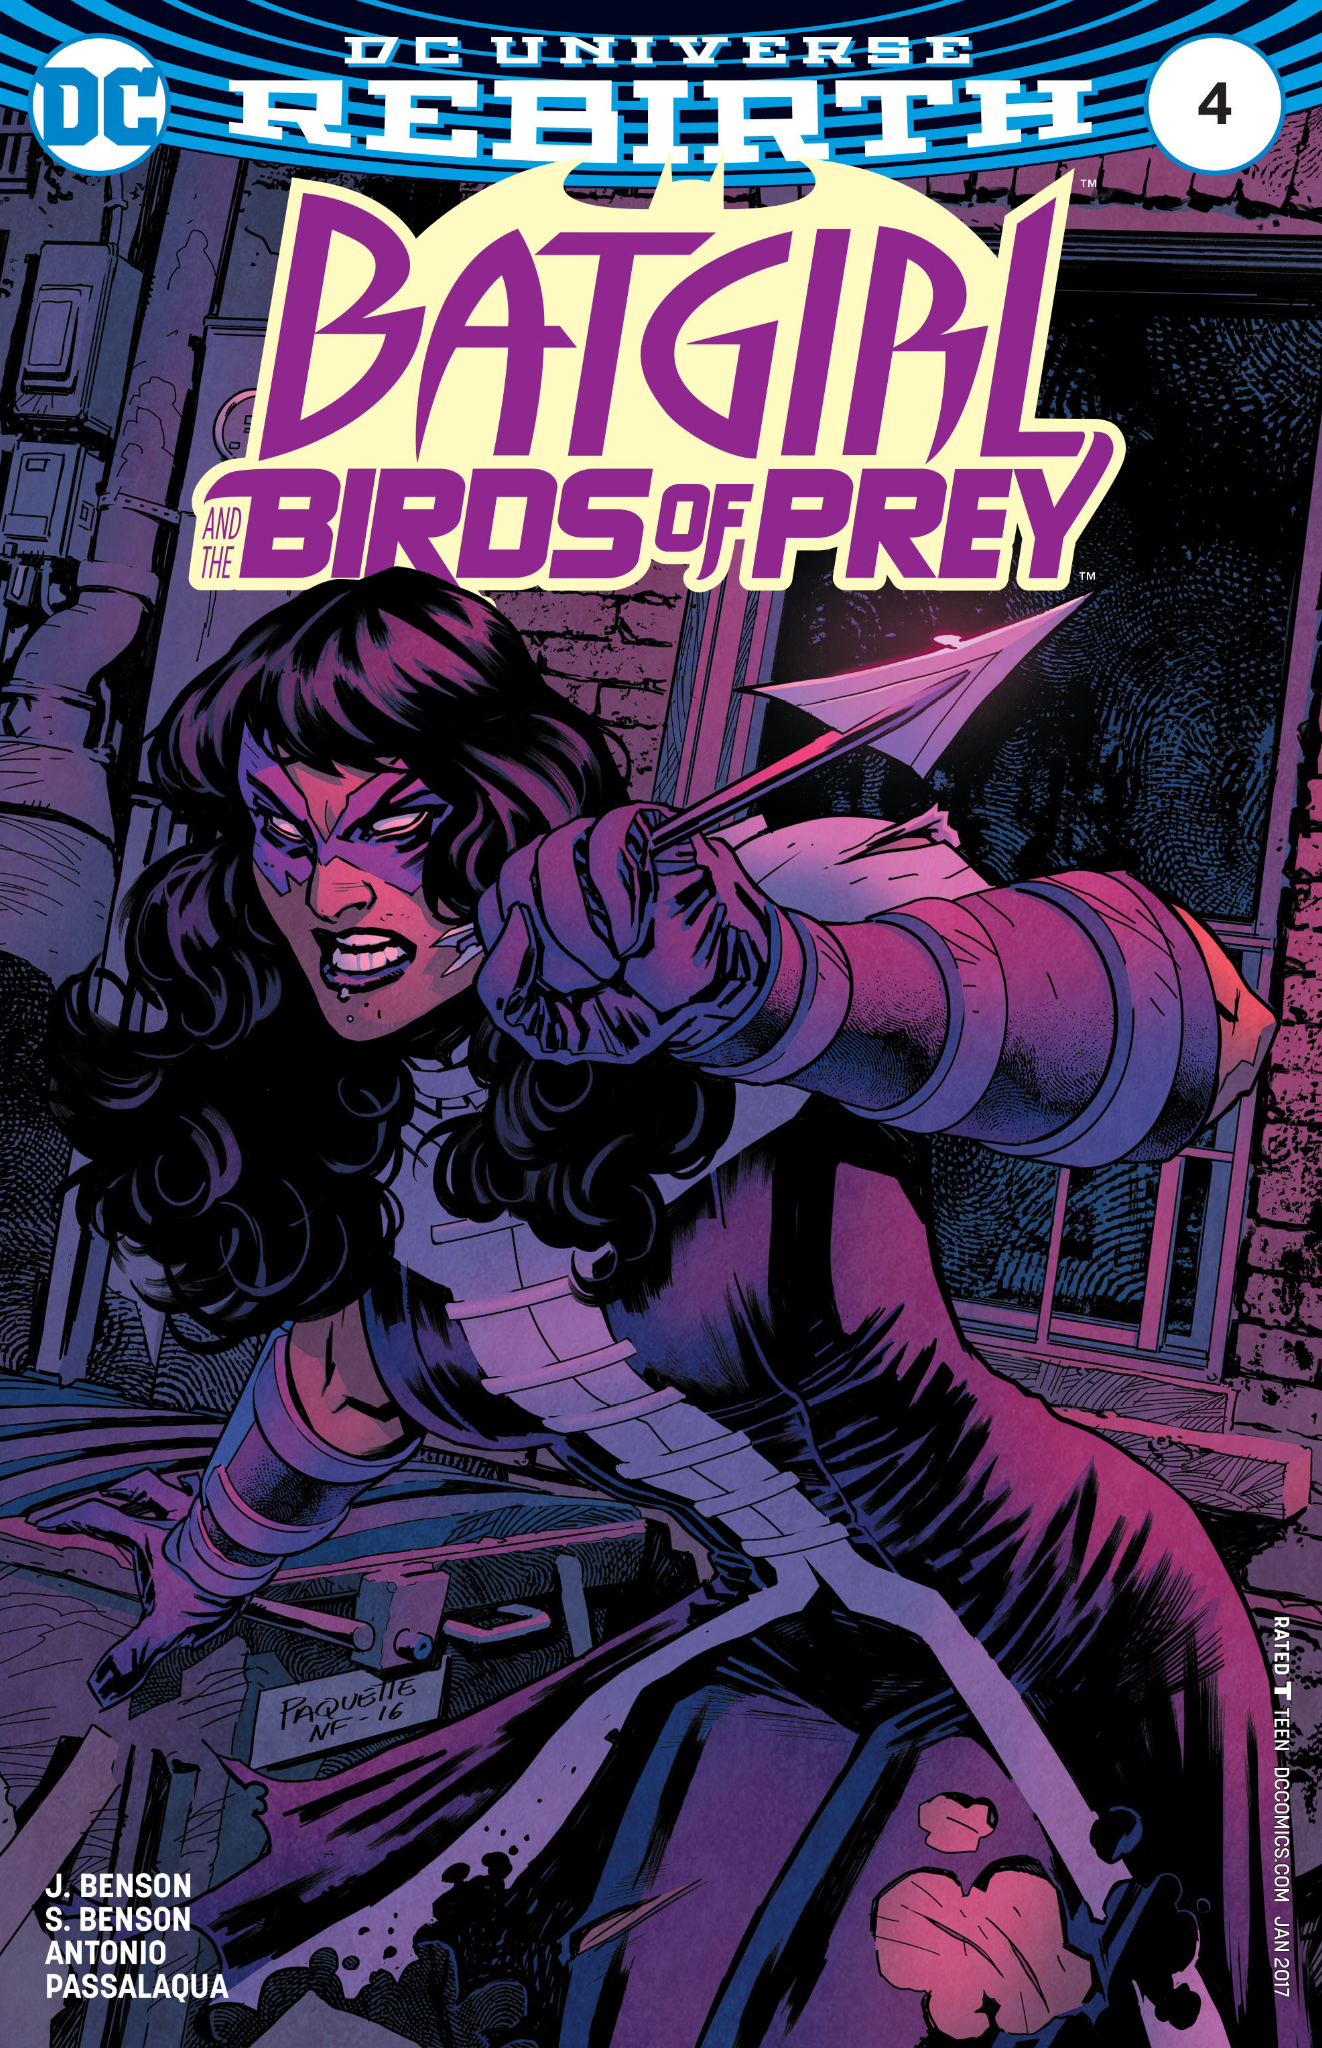 Batgirl and the Birds of Prey 4 review